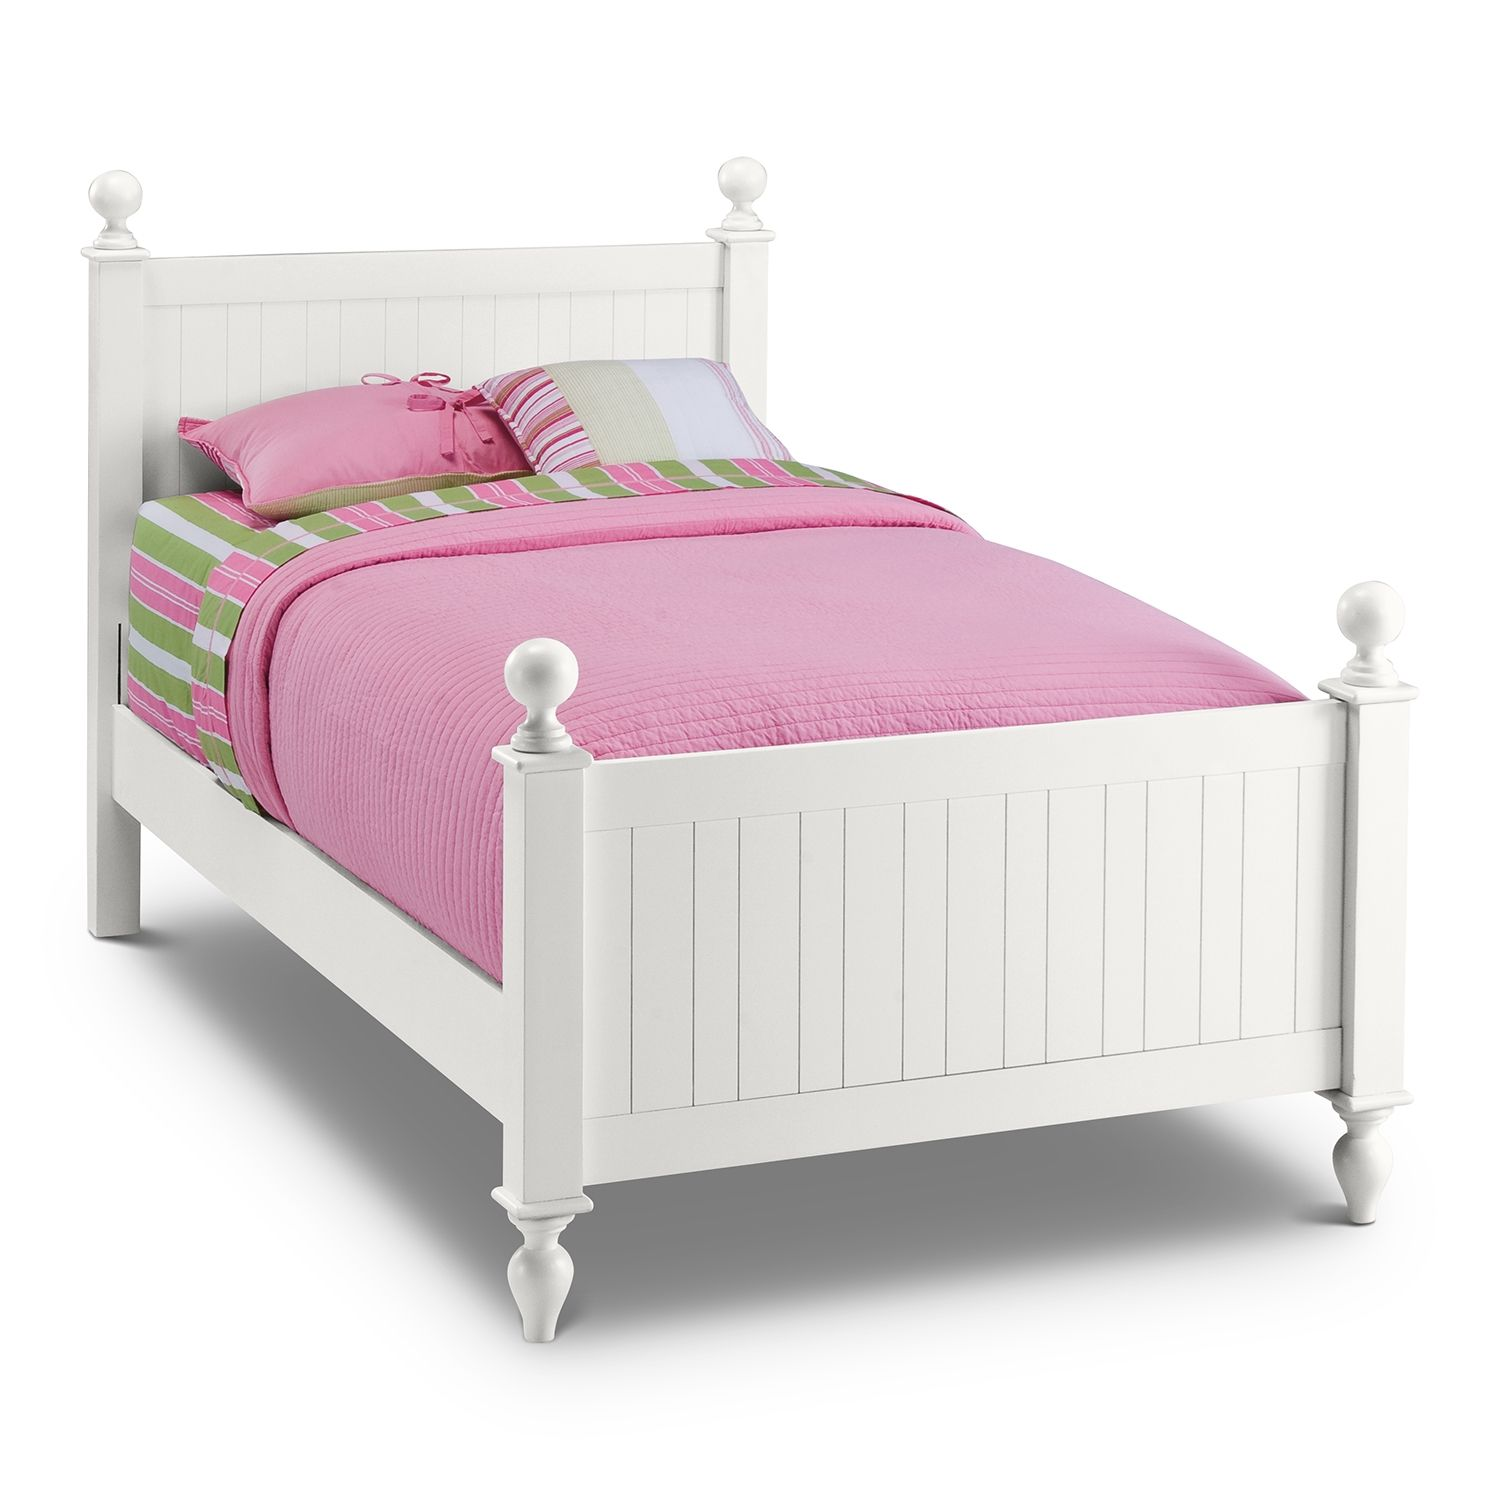 Awesome white twin bed for your kids bedroom headboards for Kids white bedroom furniture